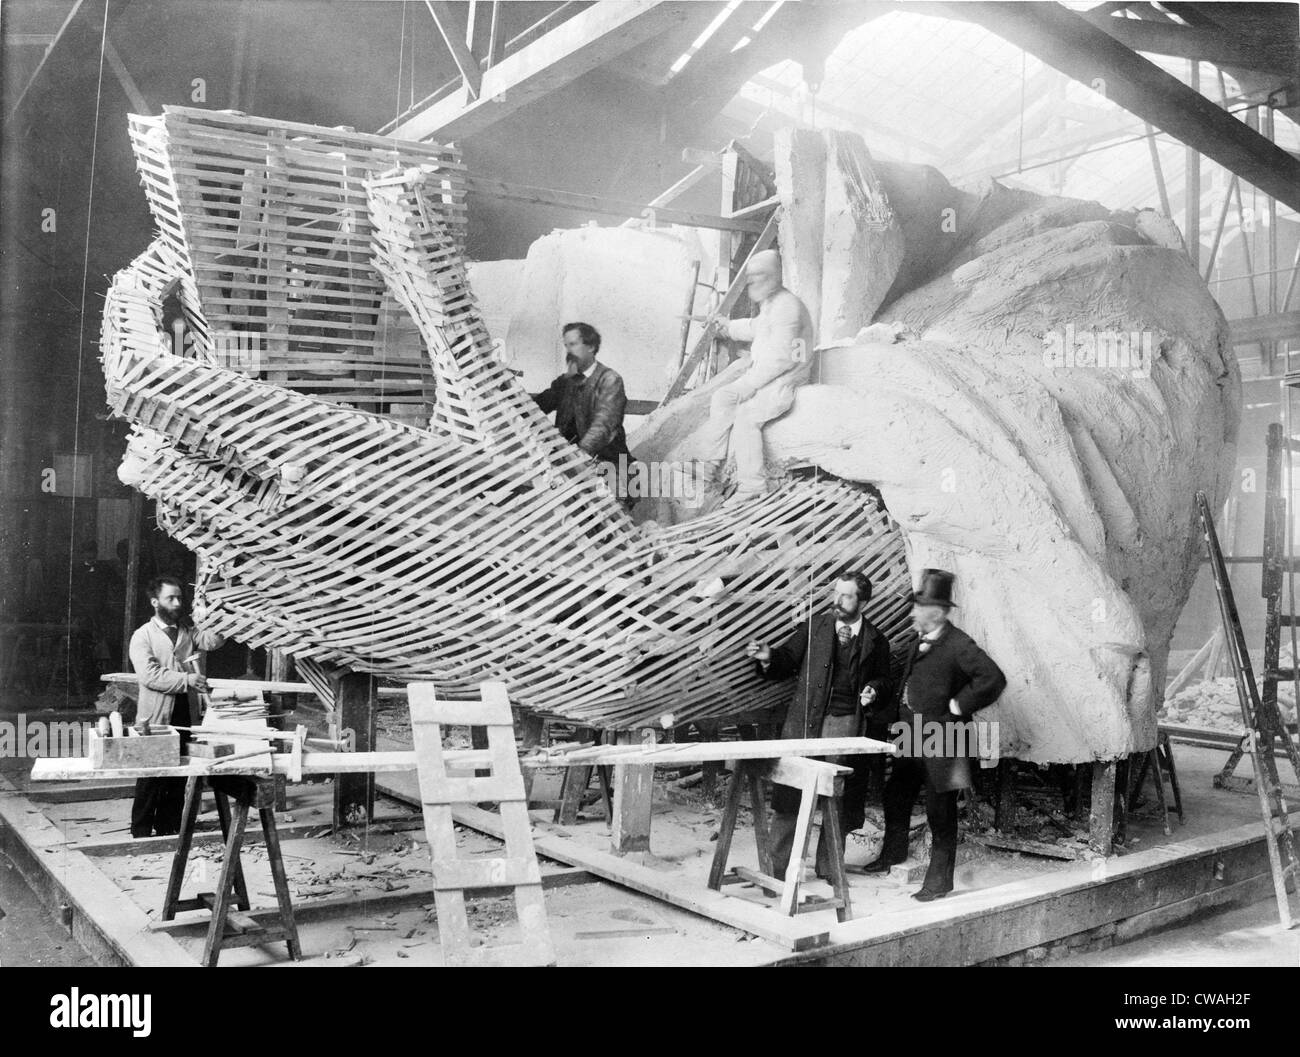 Frederic-Auguste Bartholdi (1834-1904), the French creator of the Statue of Liberty, explains the inner construction - Stock Image